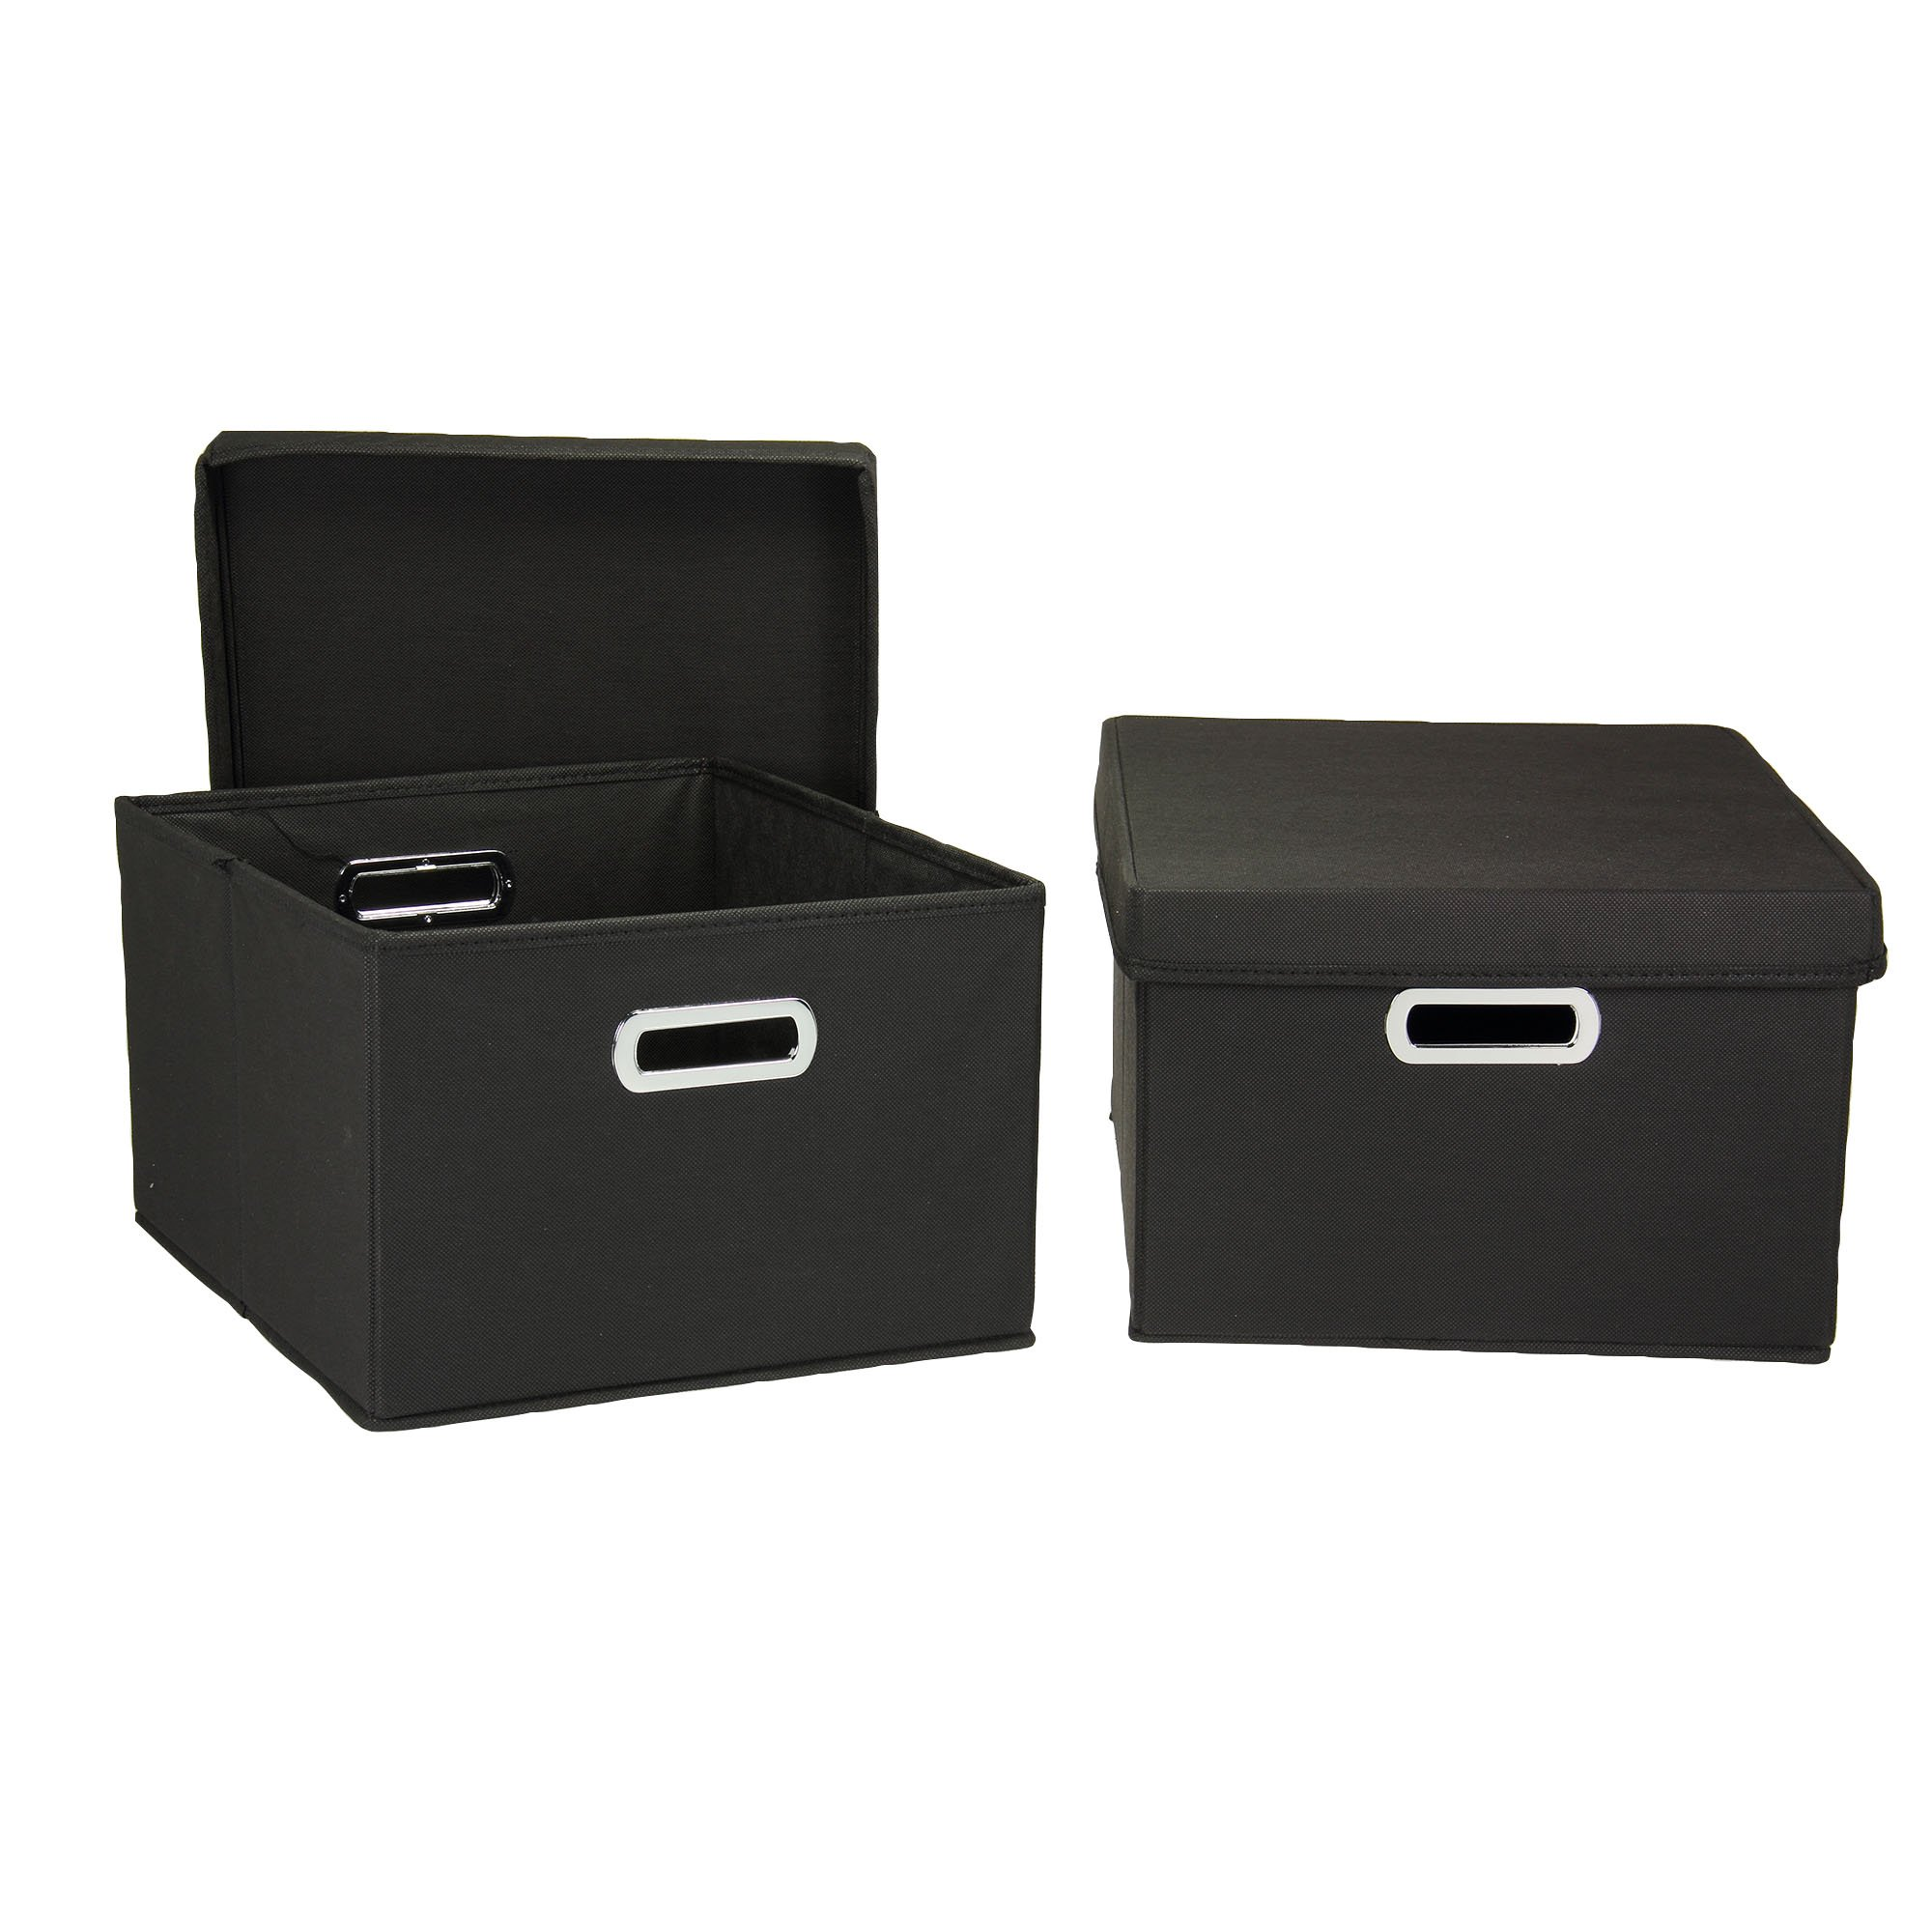 Household Essentials Fabric Storage Boxes with Lids and Handles by Household Essentials